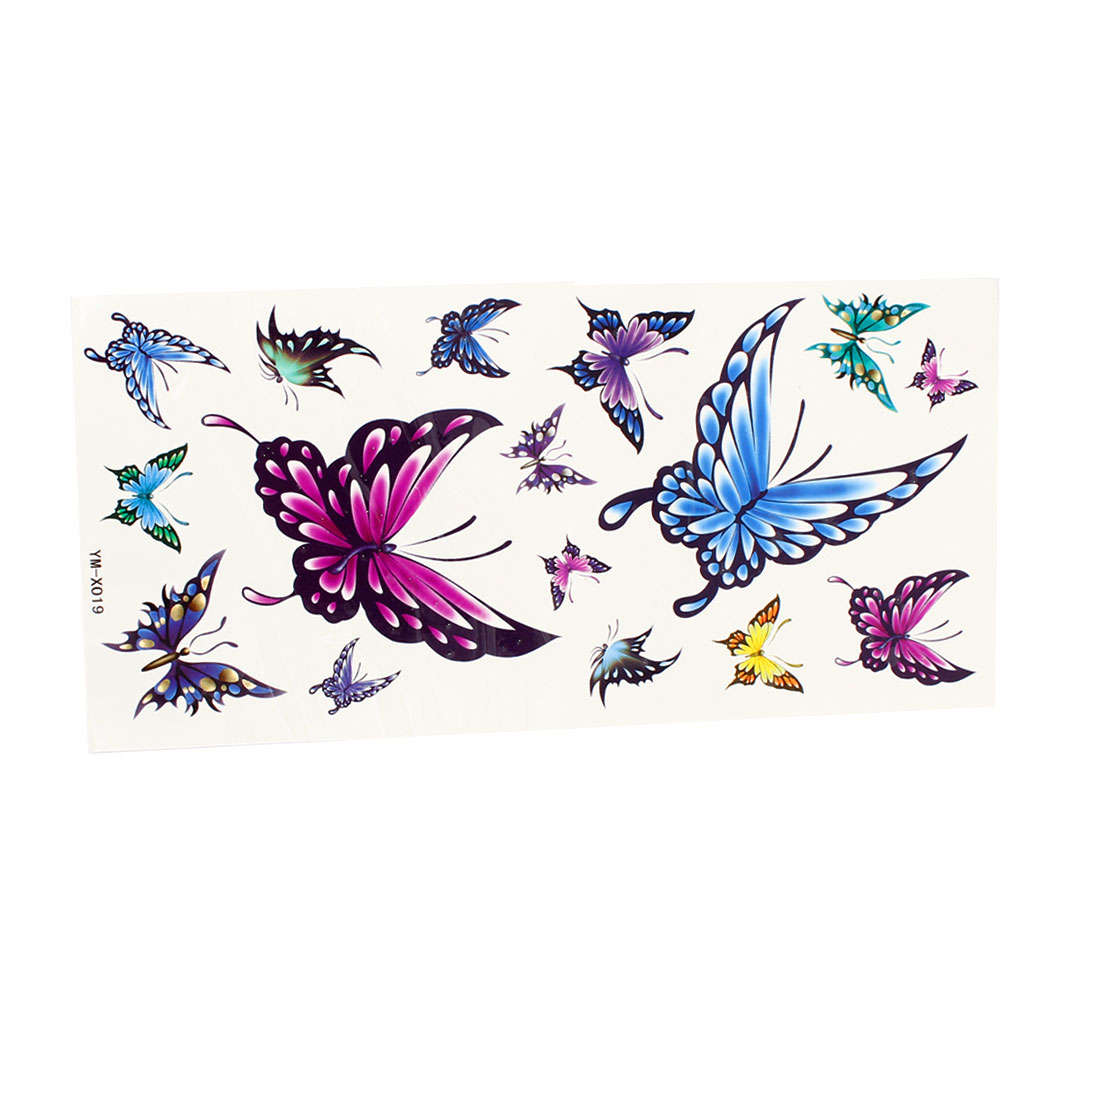 Skin Decorative Butterfly Pattern Temporary Transfer Tattoos Sticker Colorful